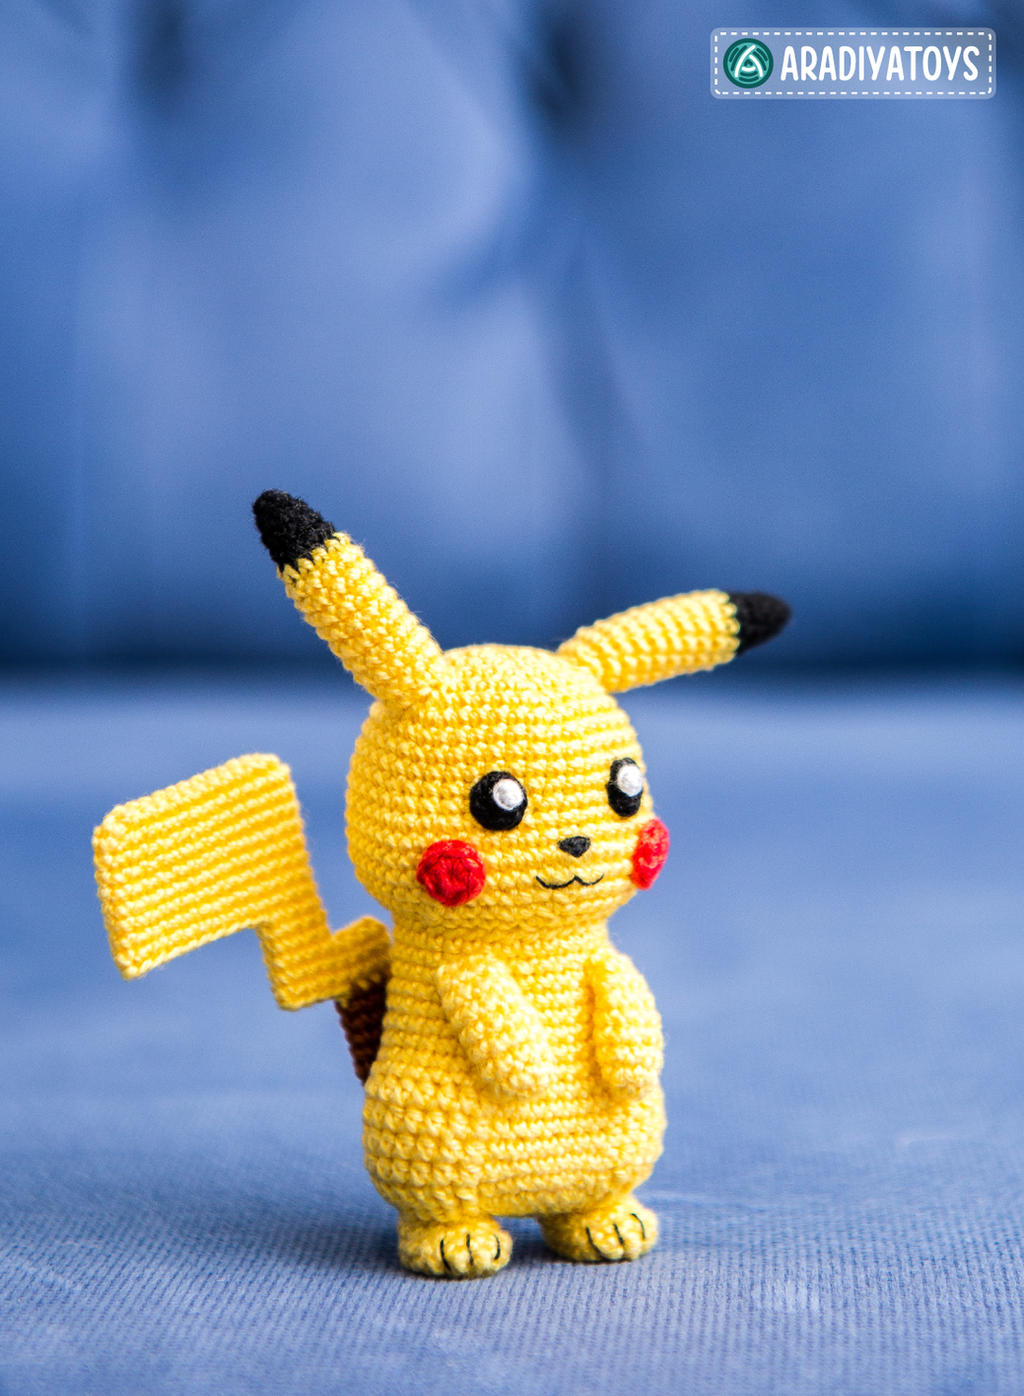 Pikachu from Pokemon, amigurumi pattern by AradiyaToys ...